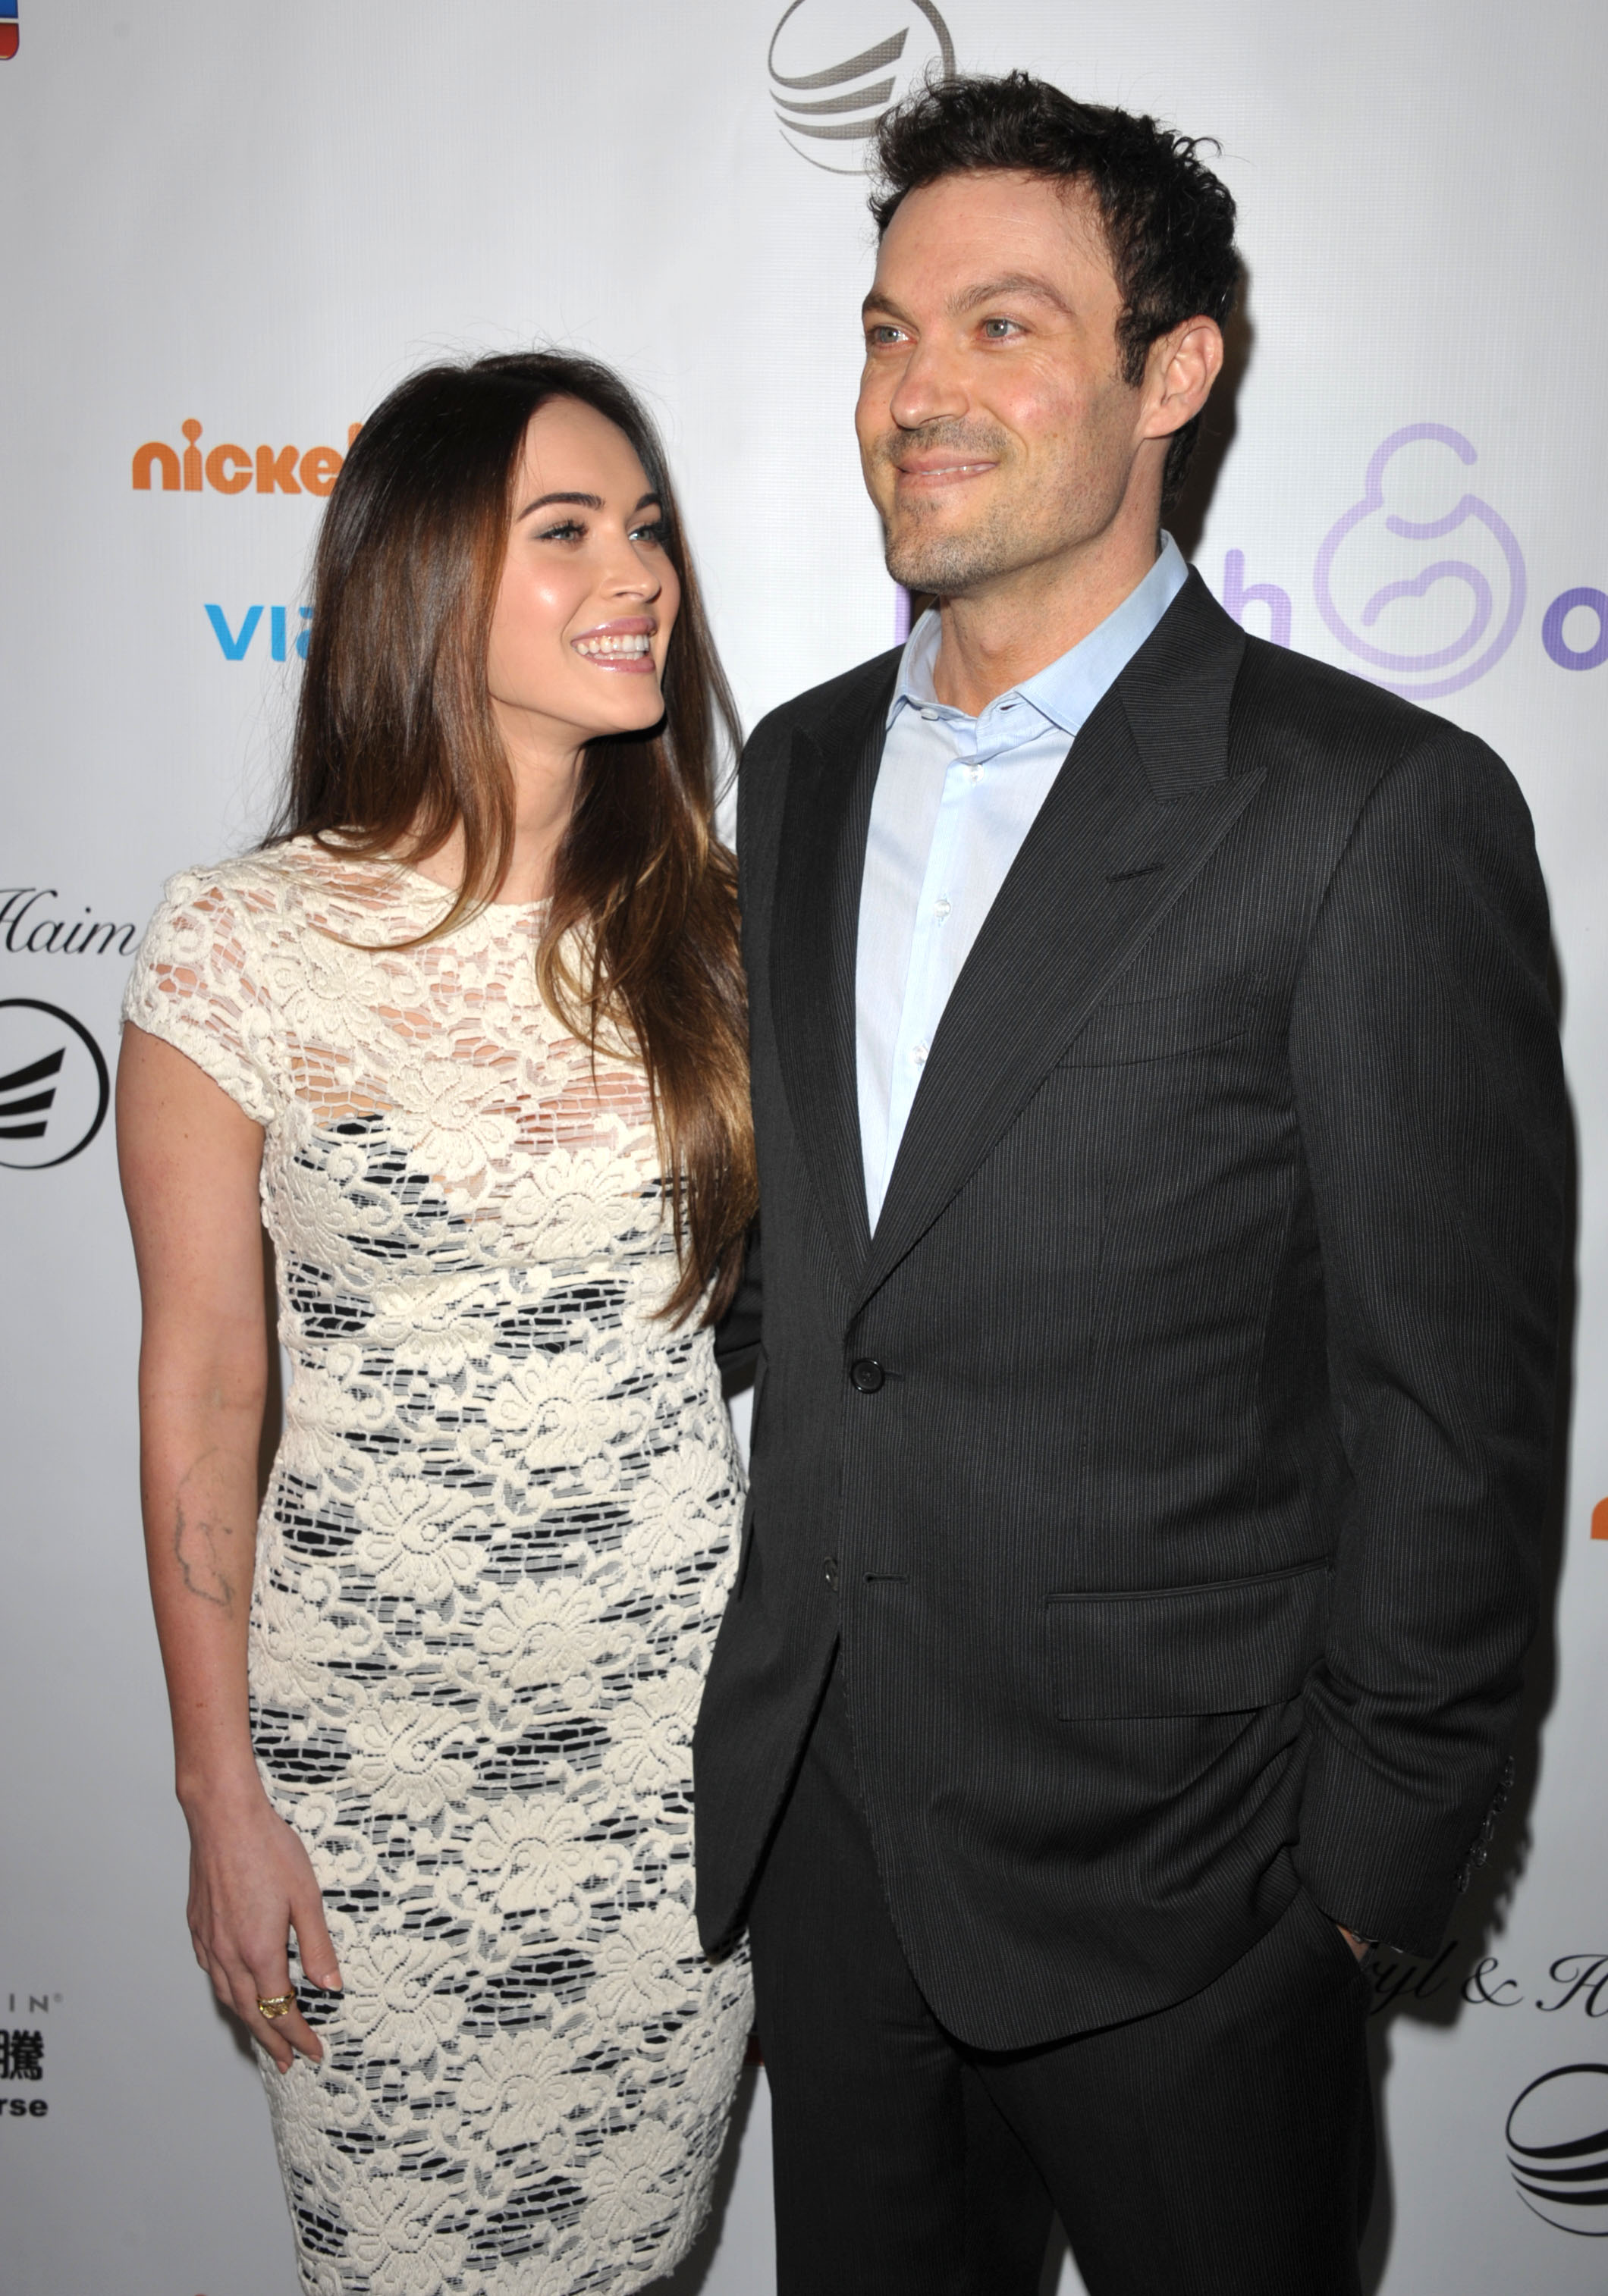 Megan Fox and Brian Austin Green arrive to the March of Dimes Celebration of Babies, in Beverly Hills, Calif2012 March of Dimes Celebration of Babies, Beverly Hills, USA - 7 Dec 2012